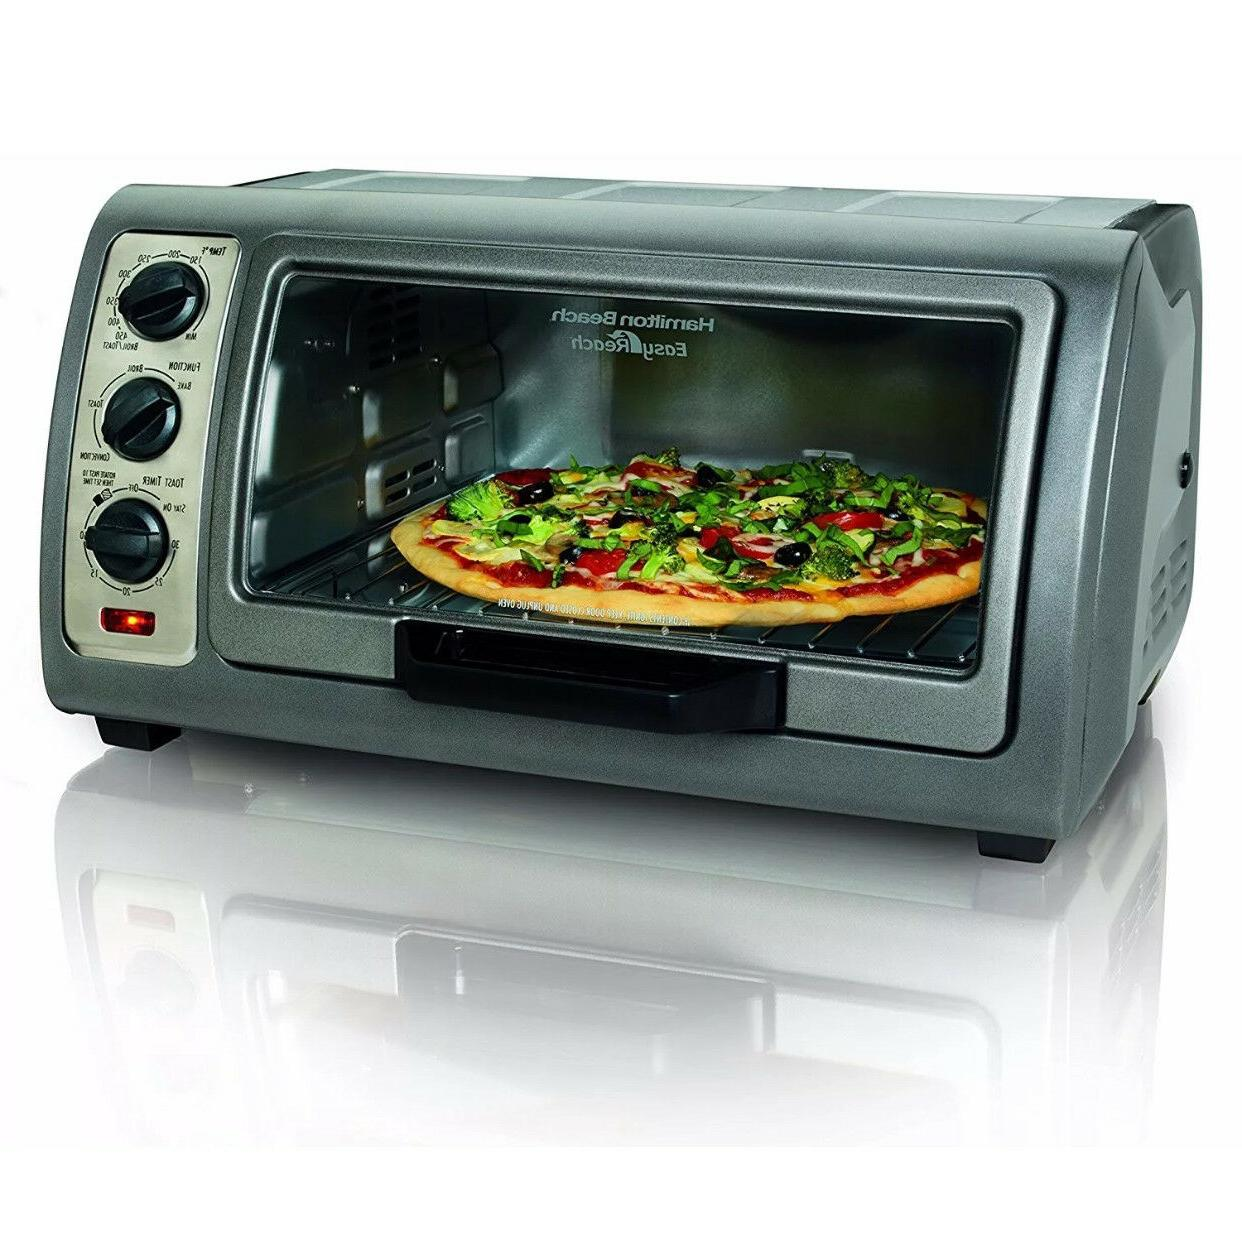 Hamilton reach 6Slice Toaster Oven with RollTop